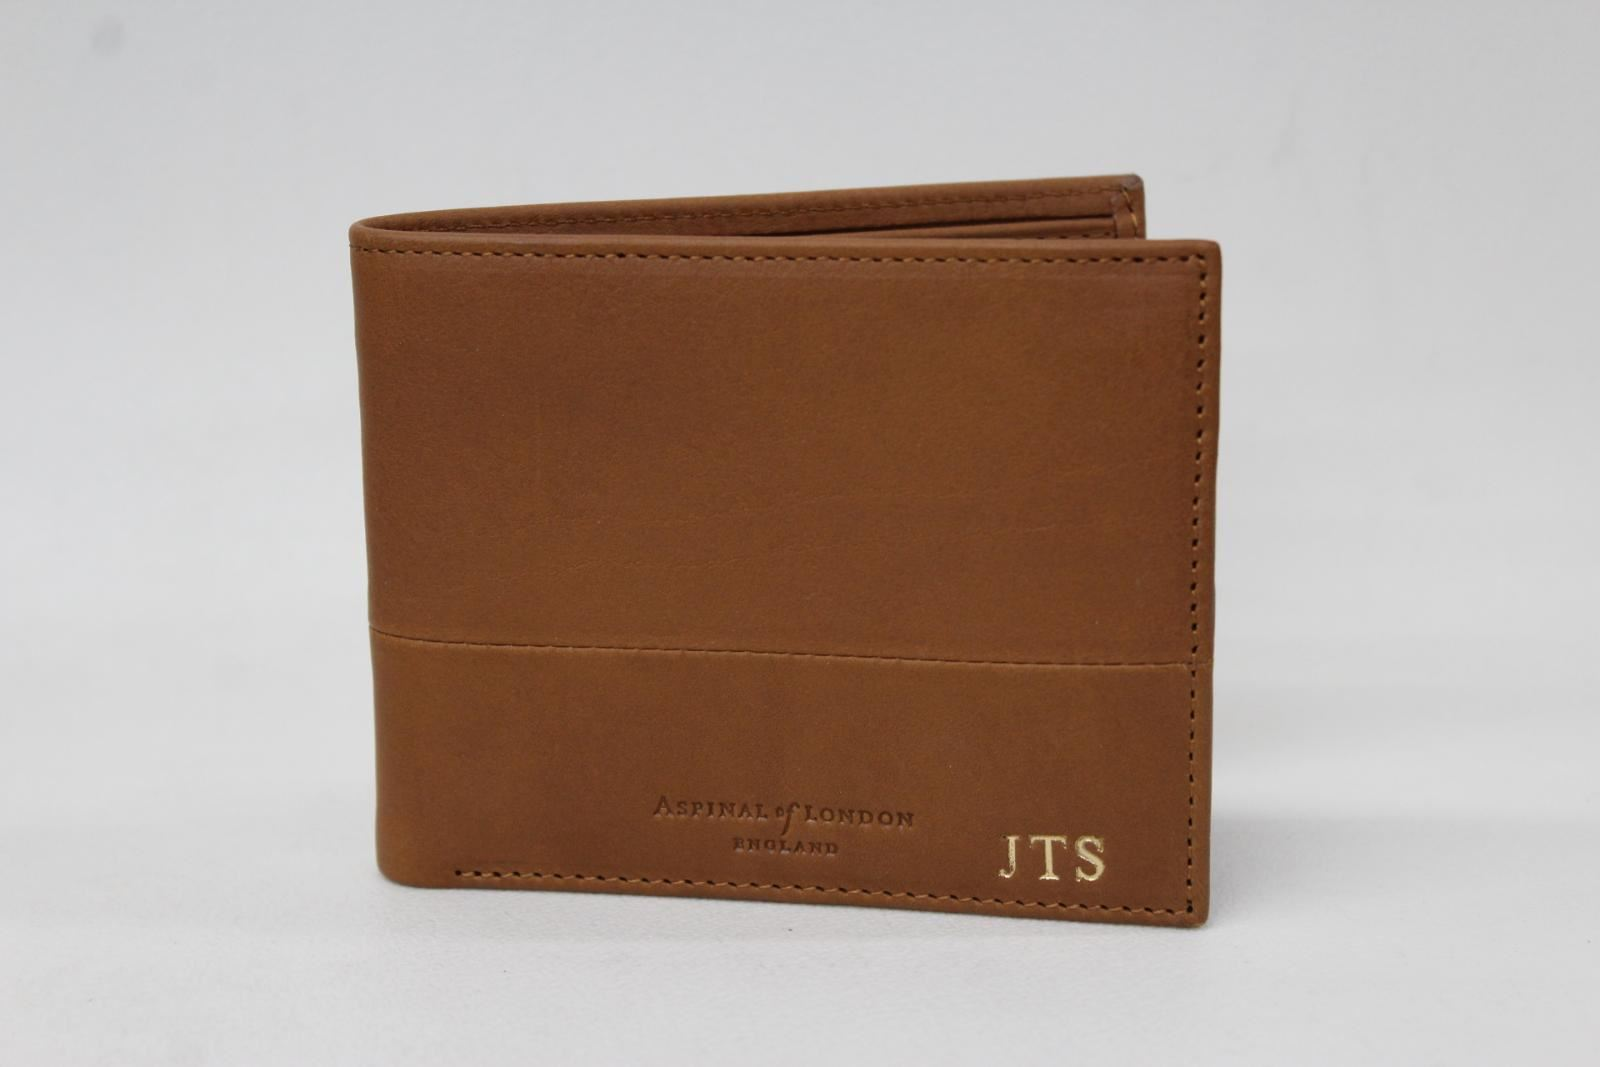 ASPINAL-OF-LONDON-Men-039-s-Tan-Brown-Leather-8-Card-amp-Note-JTS-Billfold-Wallet-NEW